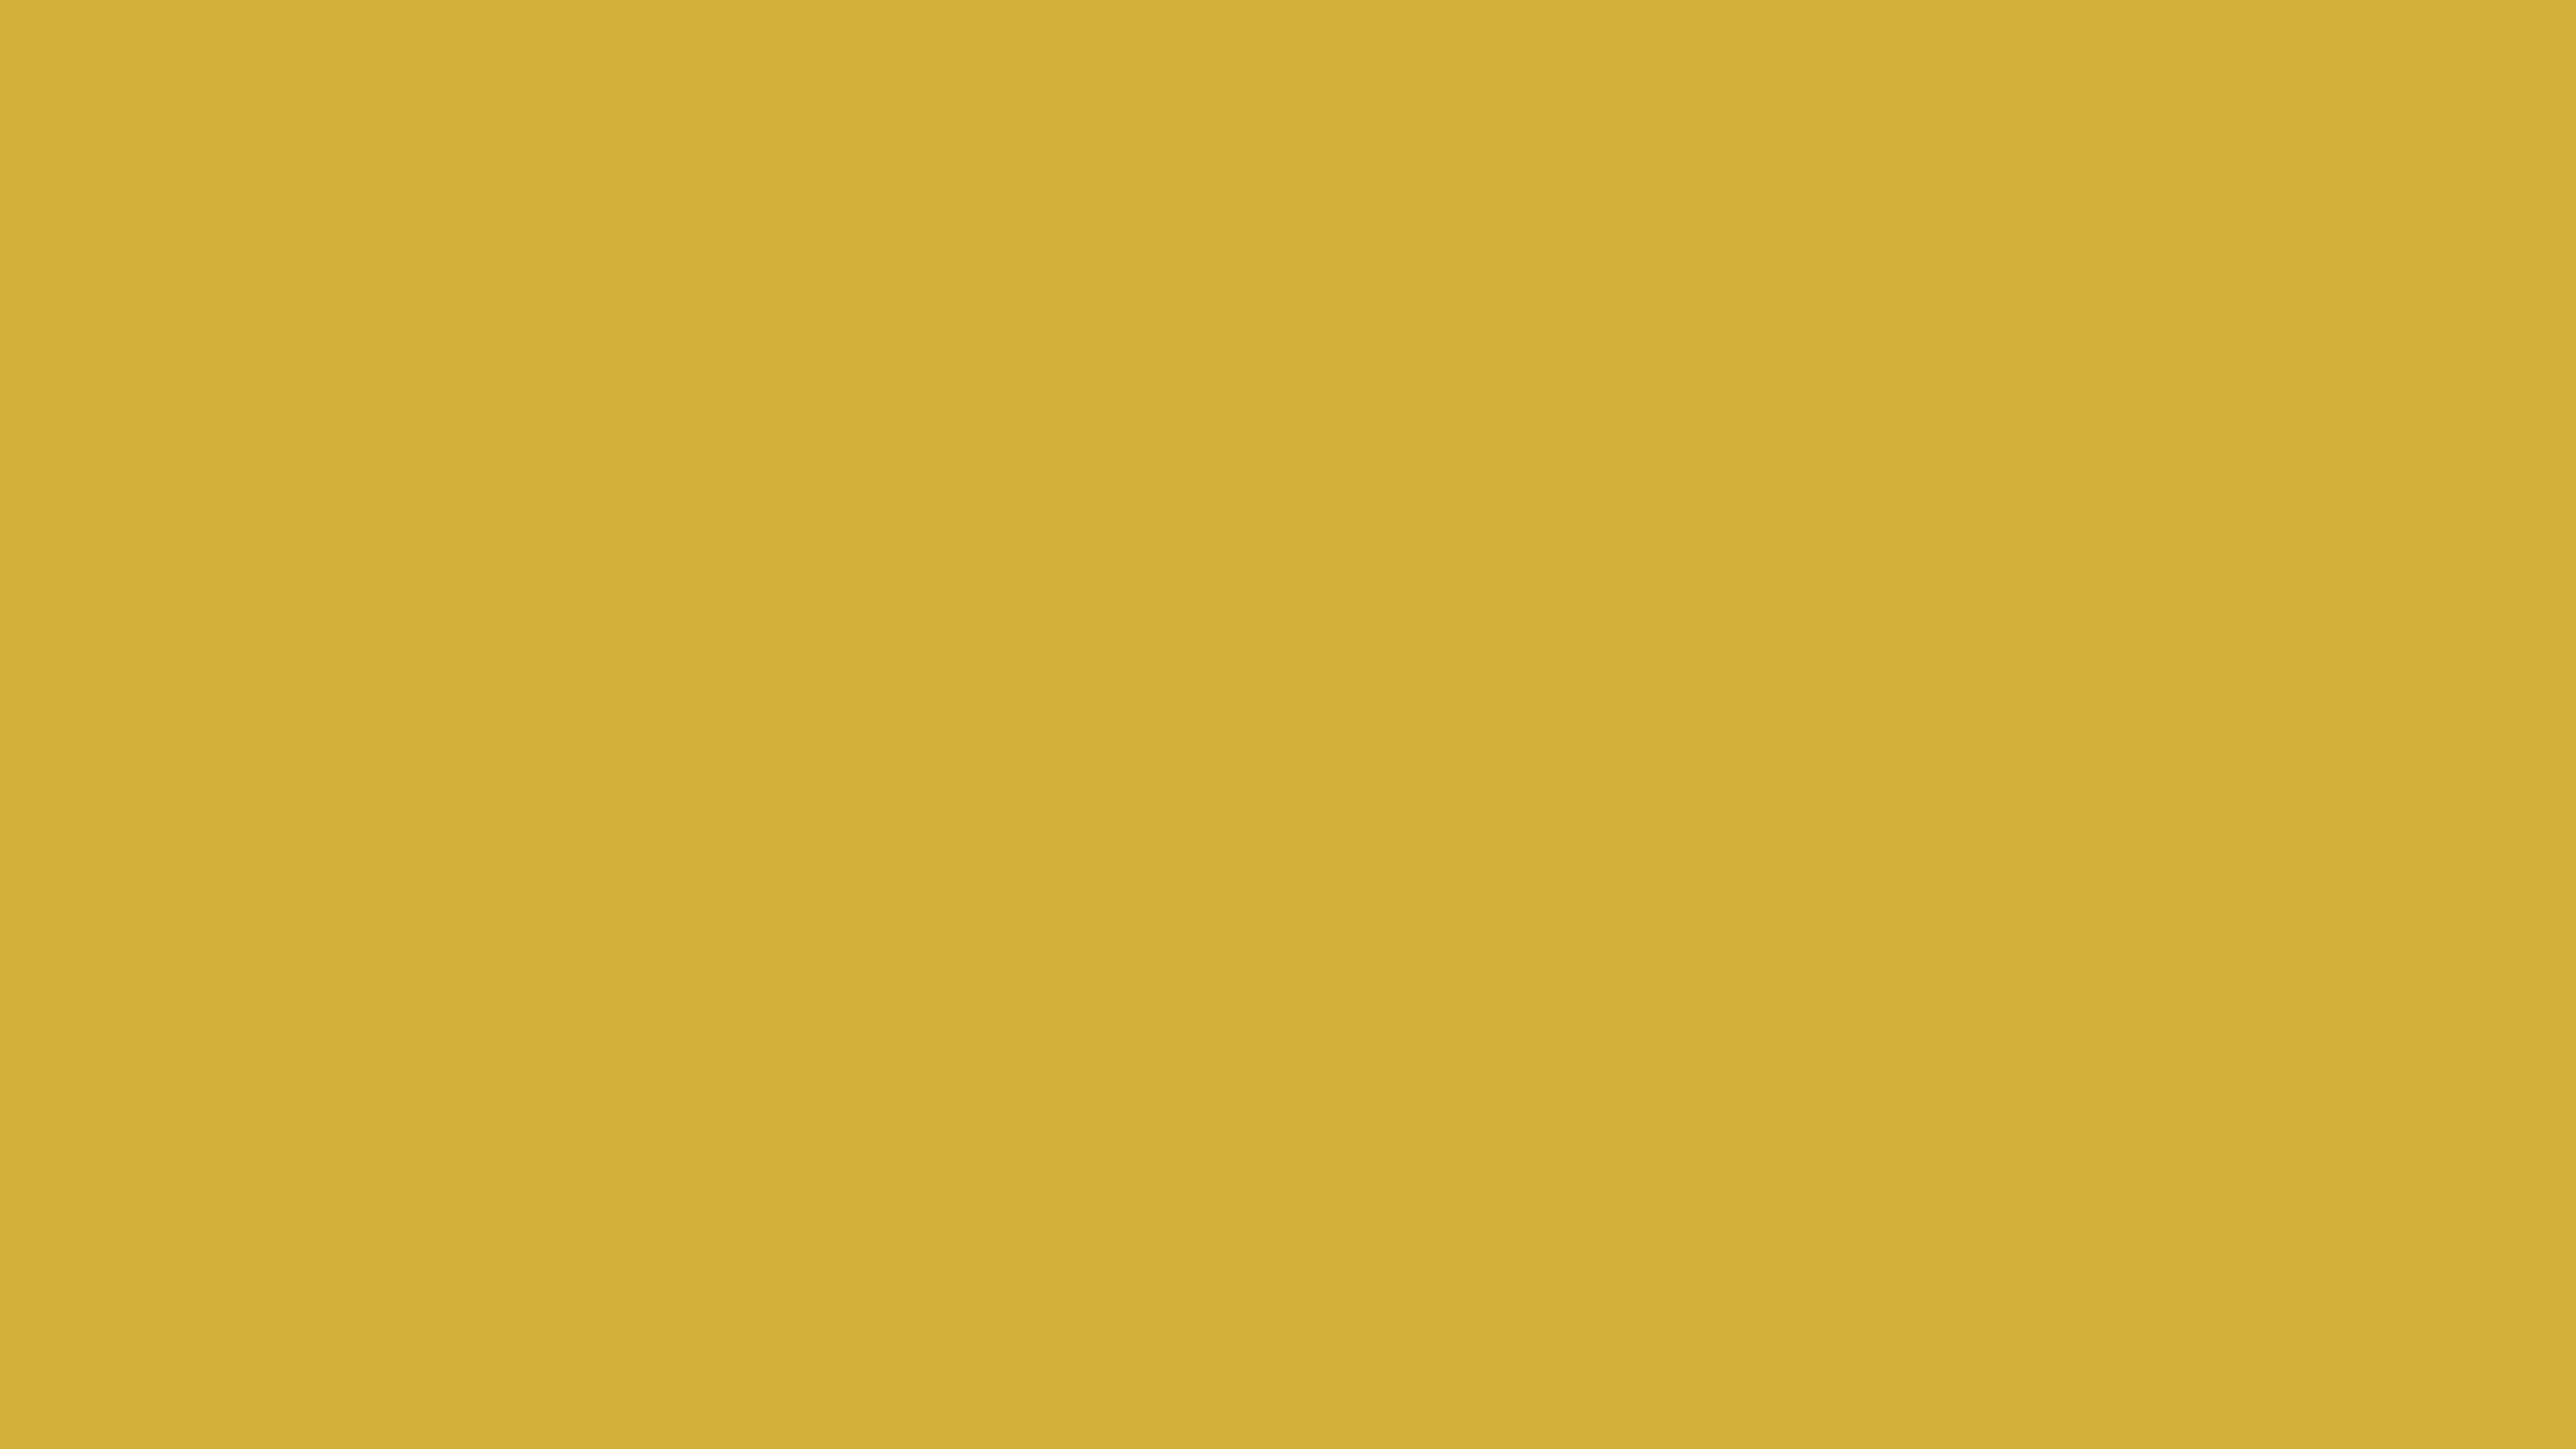 4096x2304 Gold Metallic Solid Color Background